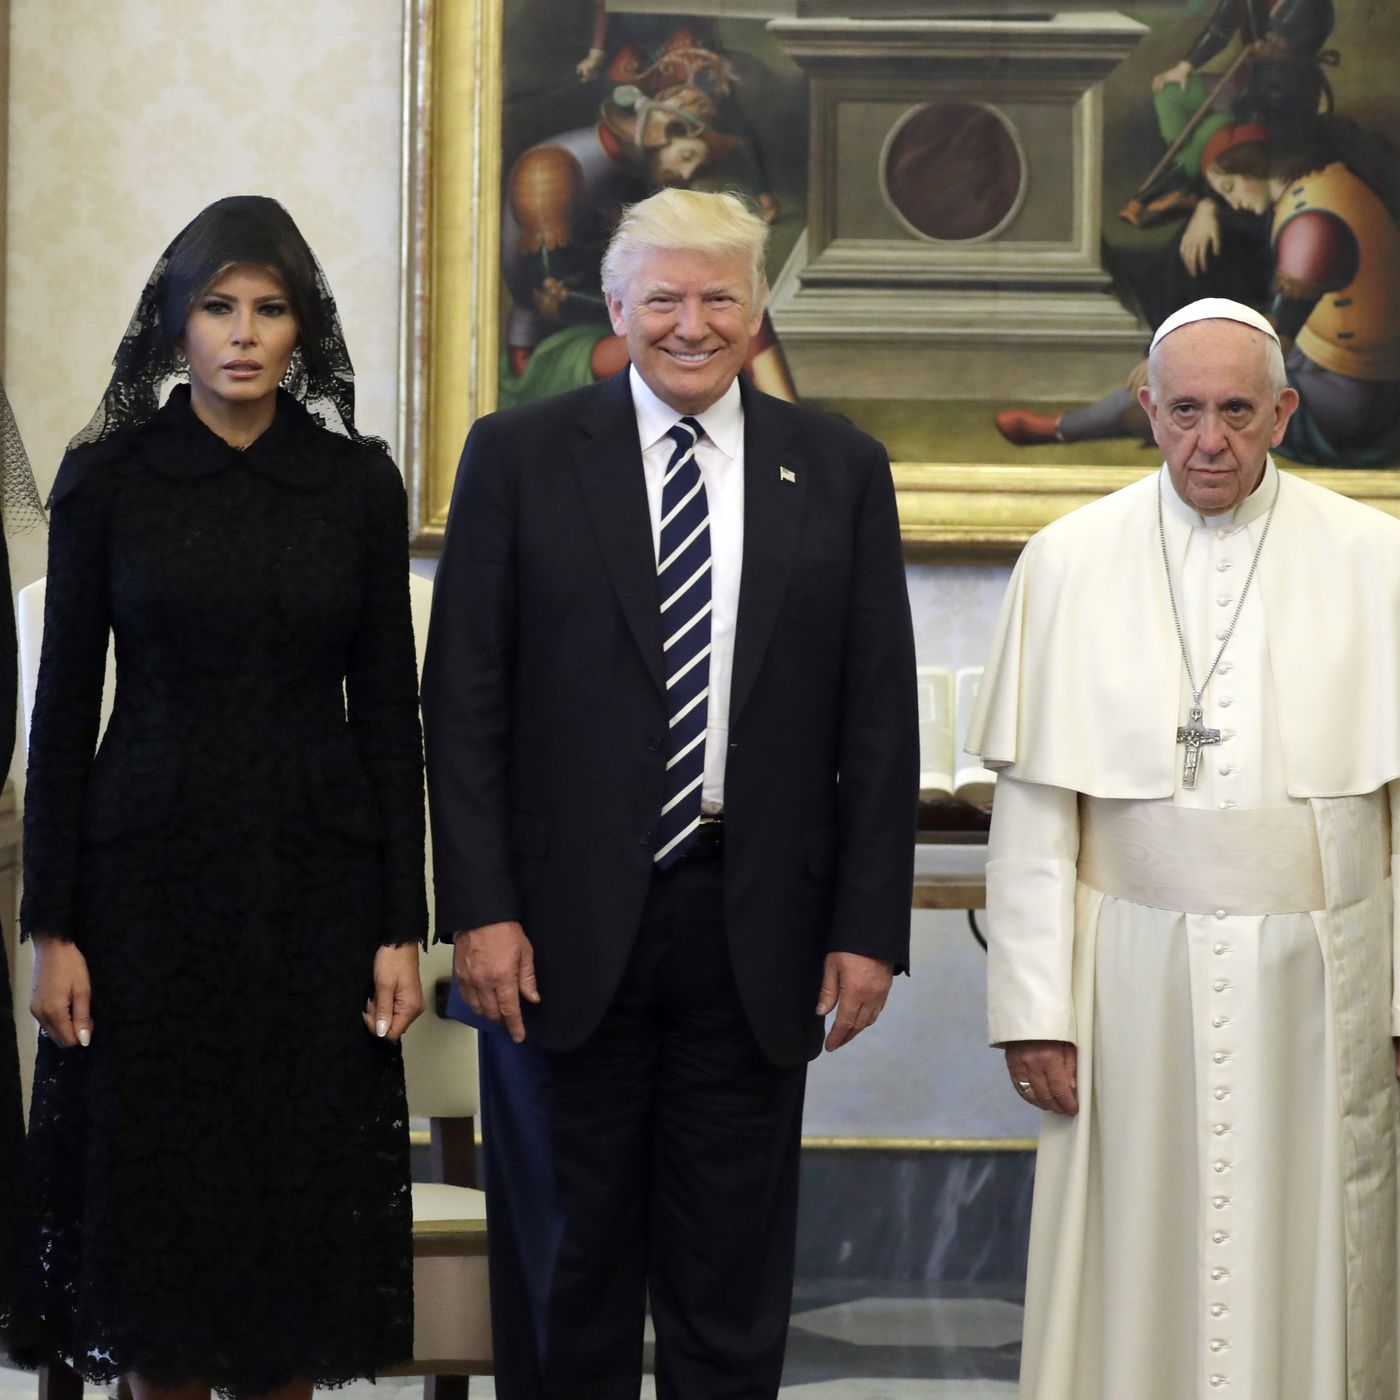 Donald Trump's meeting with Pope Francis, in one hilarious picture - Vox